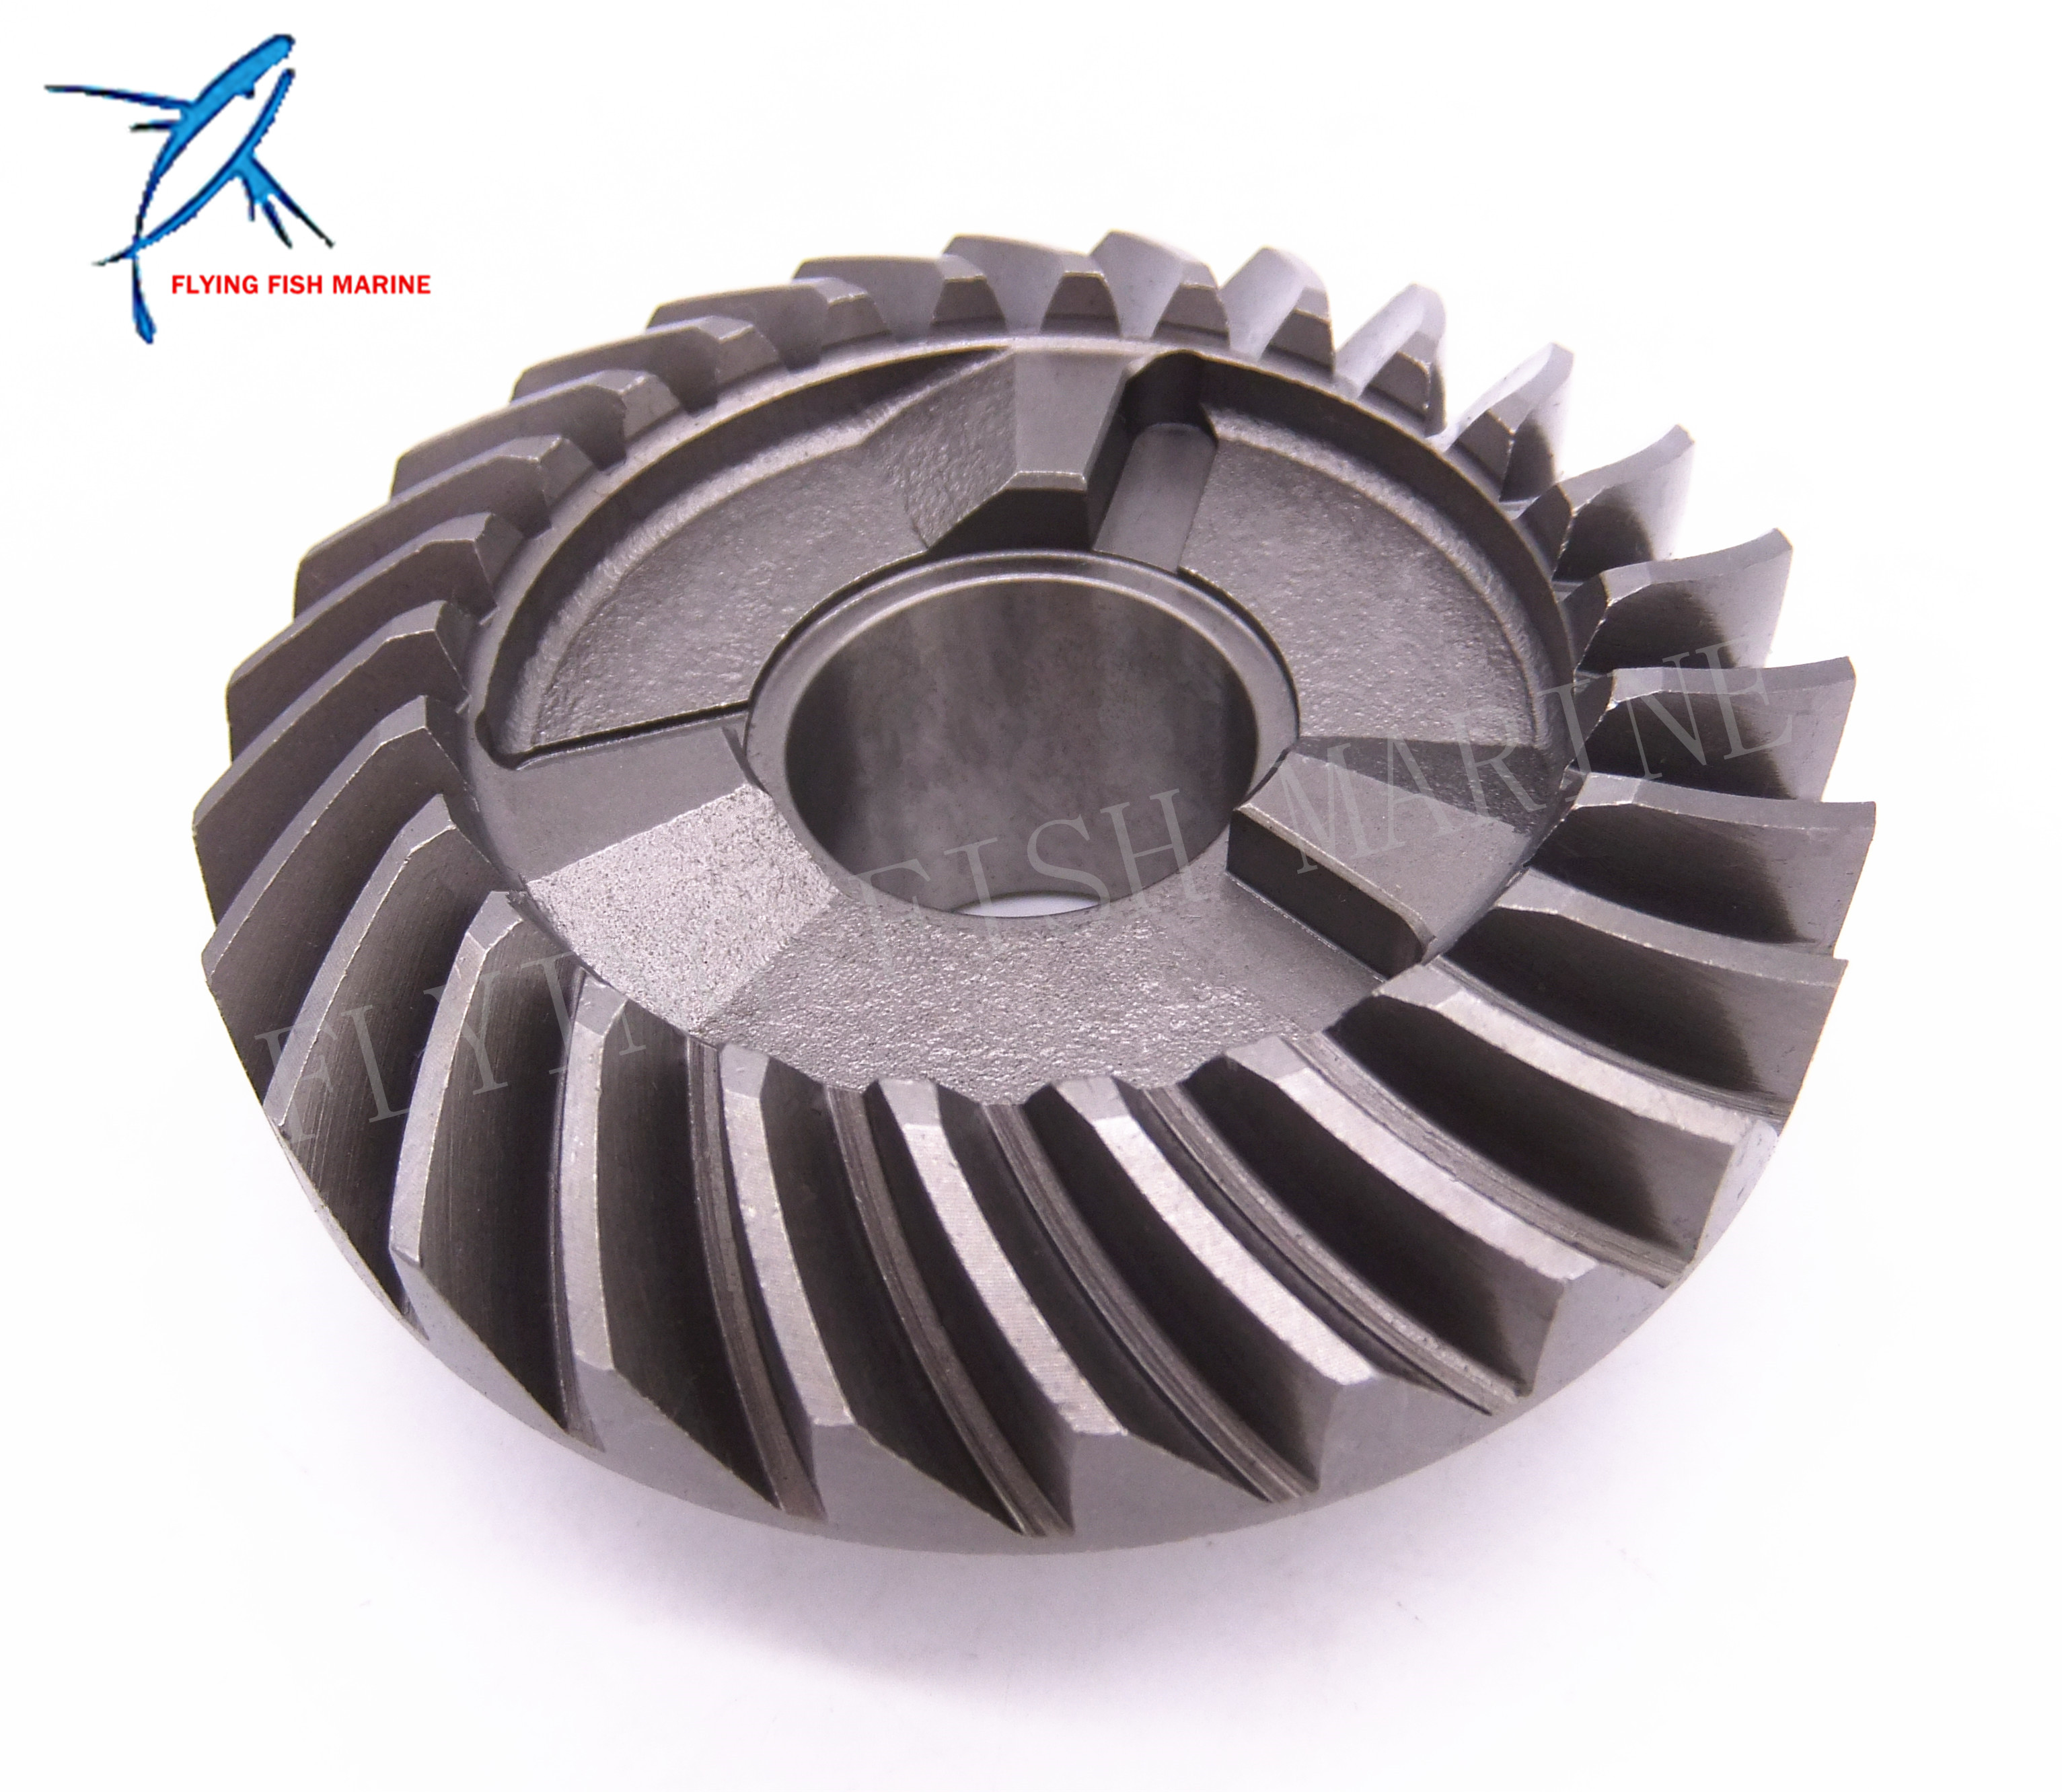 Boat Engine Automobiles & Motorcycles free Shipping Quell Summer Thirst Delicious Boat Motor Reverse Gear T85-04000005 For Parsun Hdx Outboard Engine 2-stroke T75 T85 T90